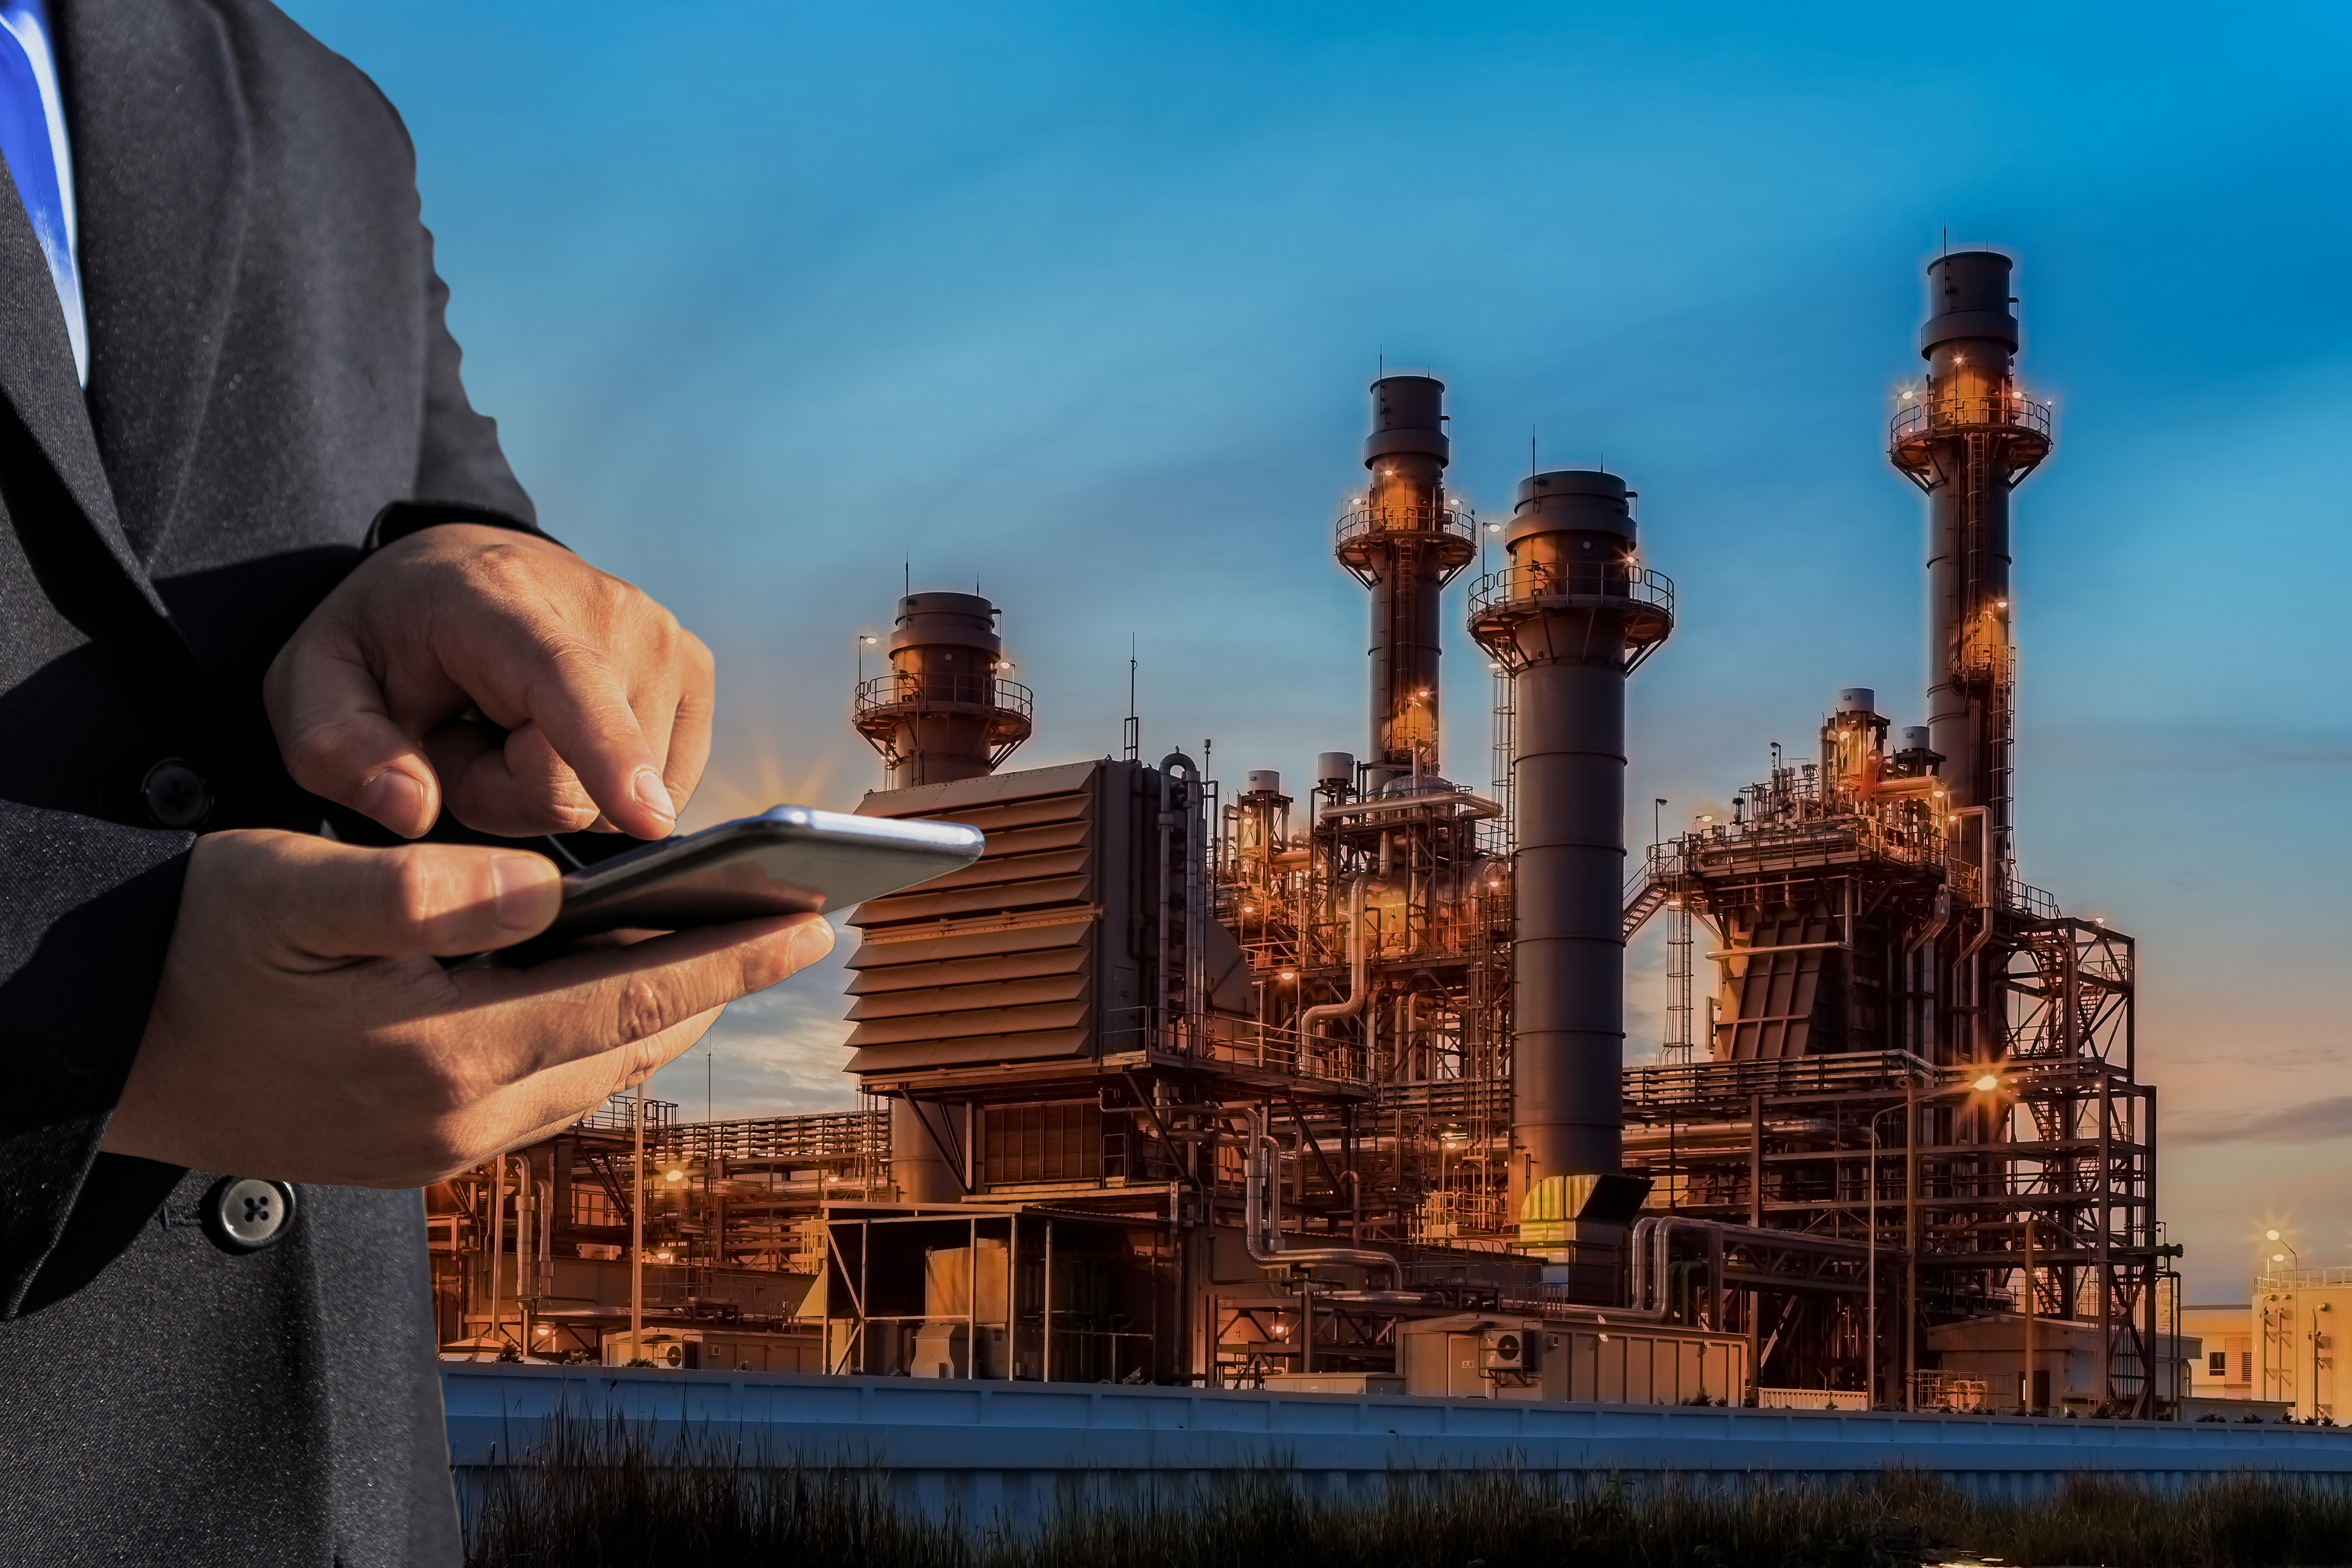 How Mobile Apps Can Help Rejuvenate the Oil and Gas Industry